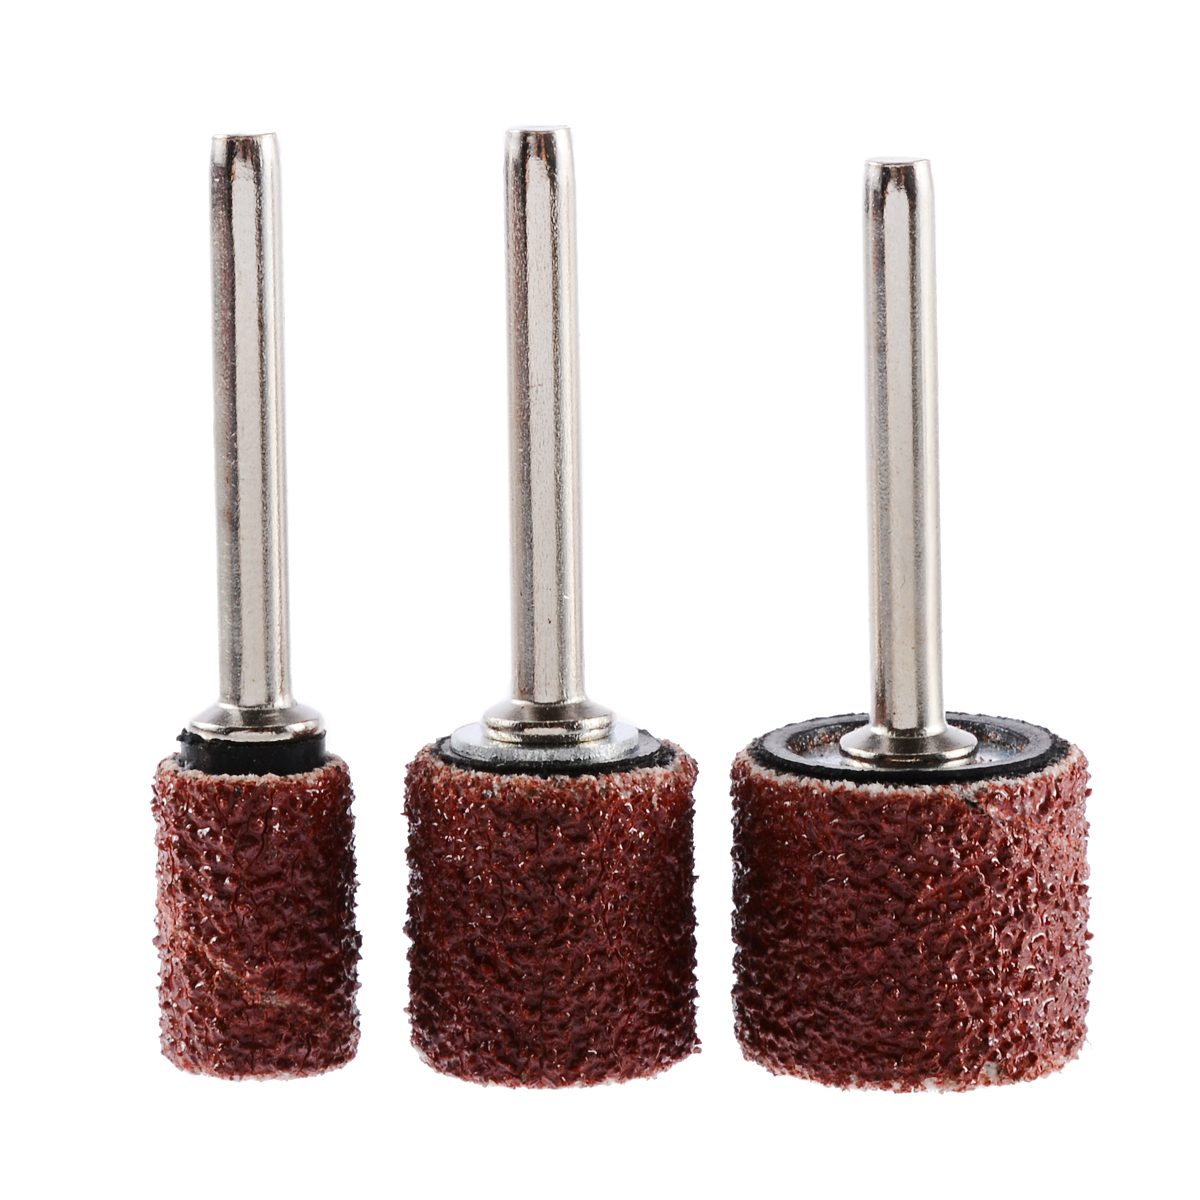 "Hot Sale 63pcs Drum Sanding Bands 1/2 3/8 1/4"" Mandrels Fit Nail Drill Rotary Tools for Metal Polishing Grinding Rotary Tools"